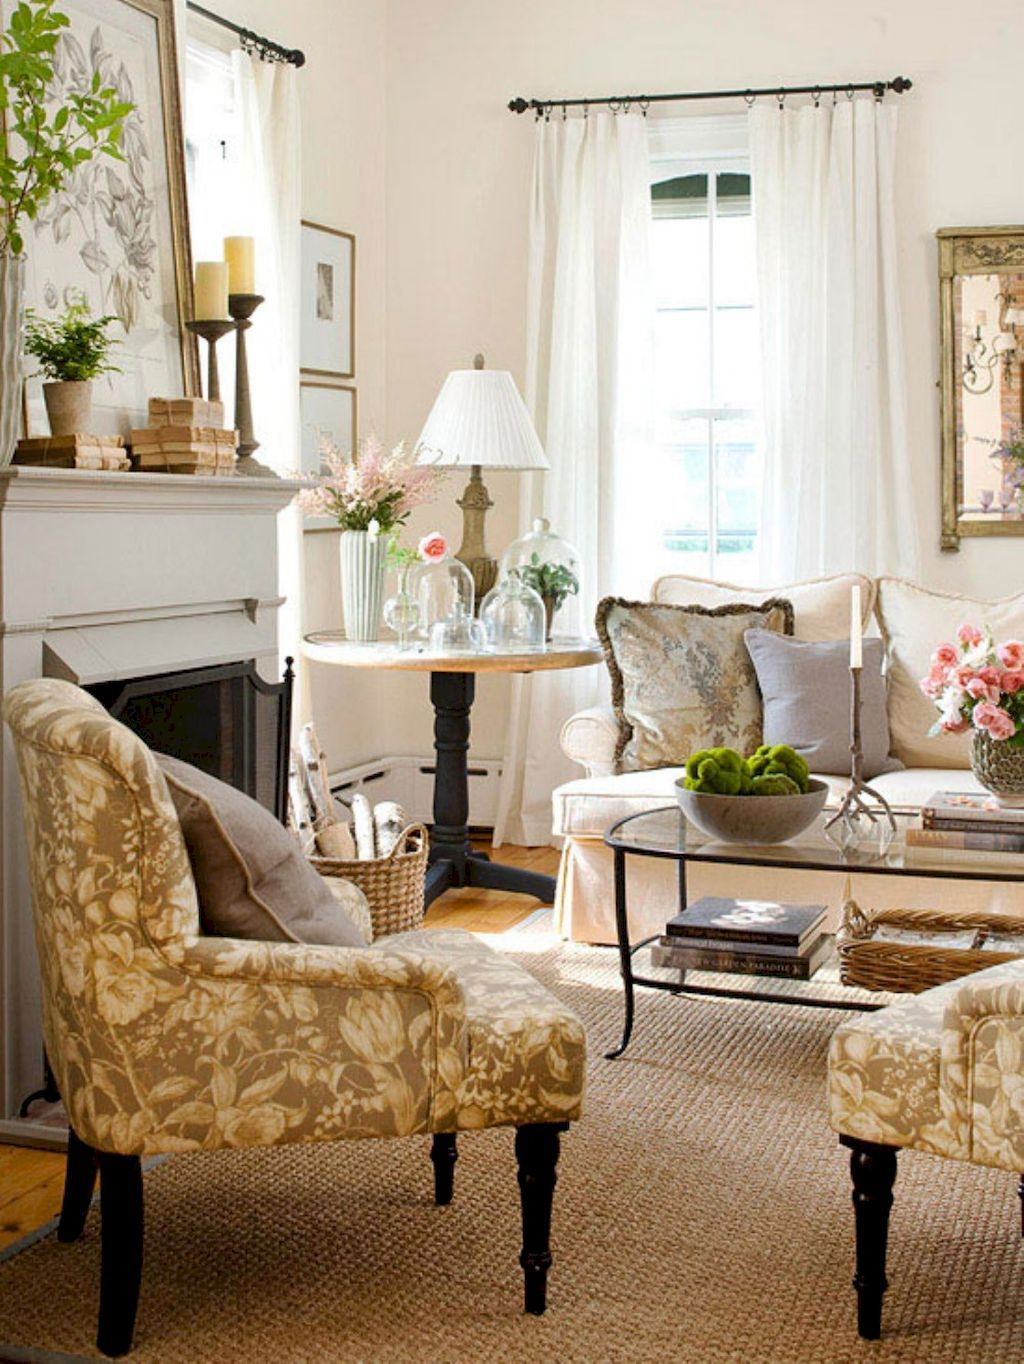 French Living Room Design Beauteous Gorgeous French Country Living Room Decor Ideas 32  French Design Inspiration